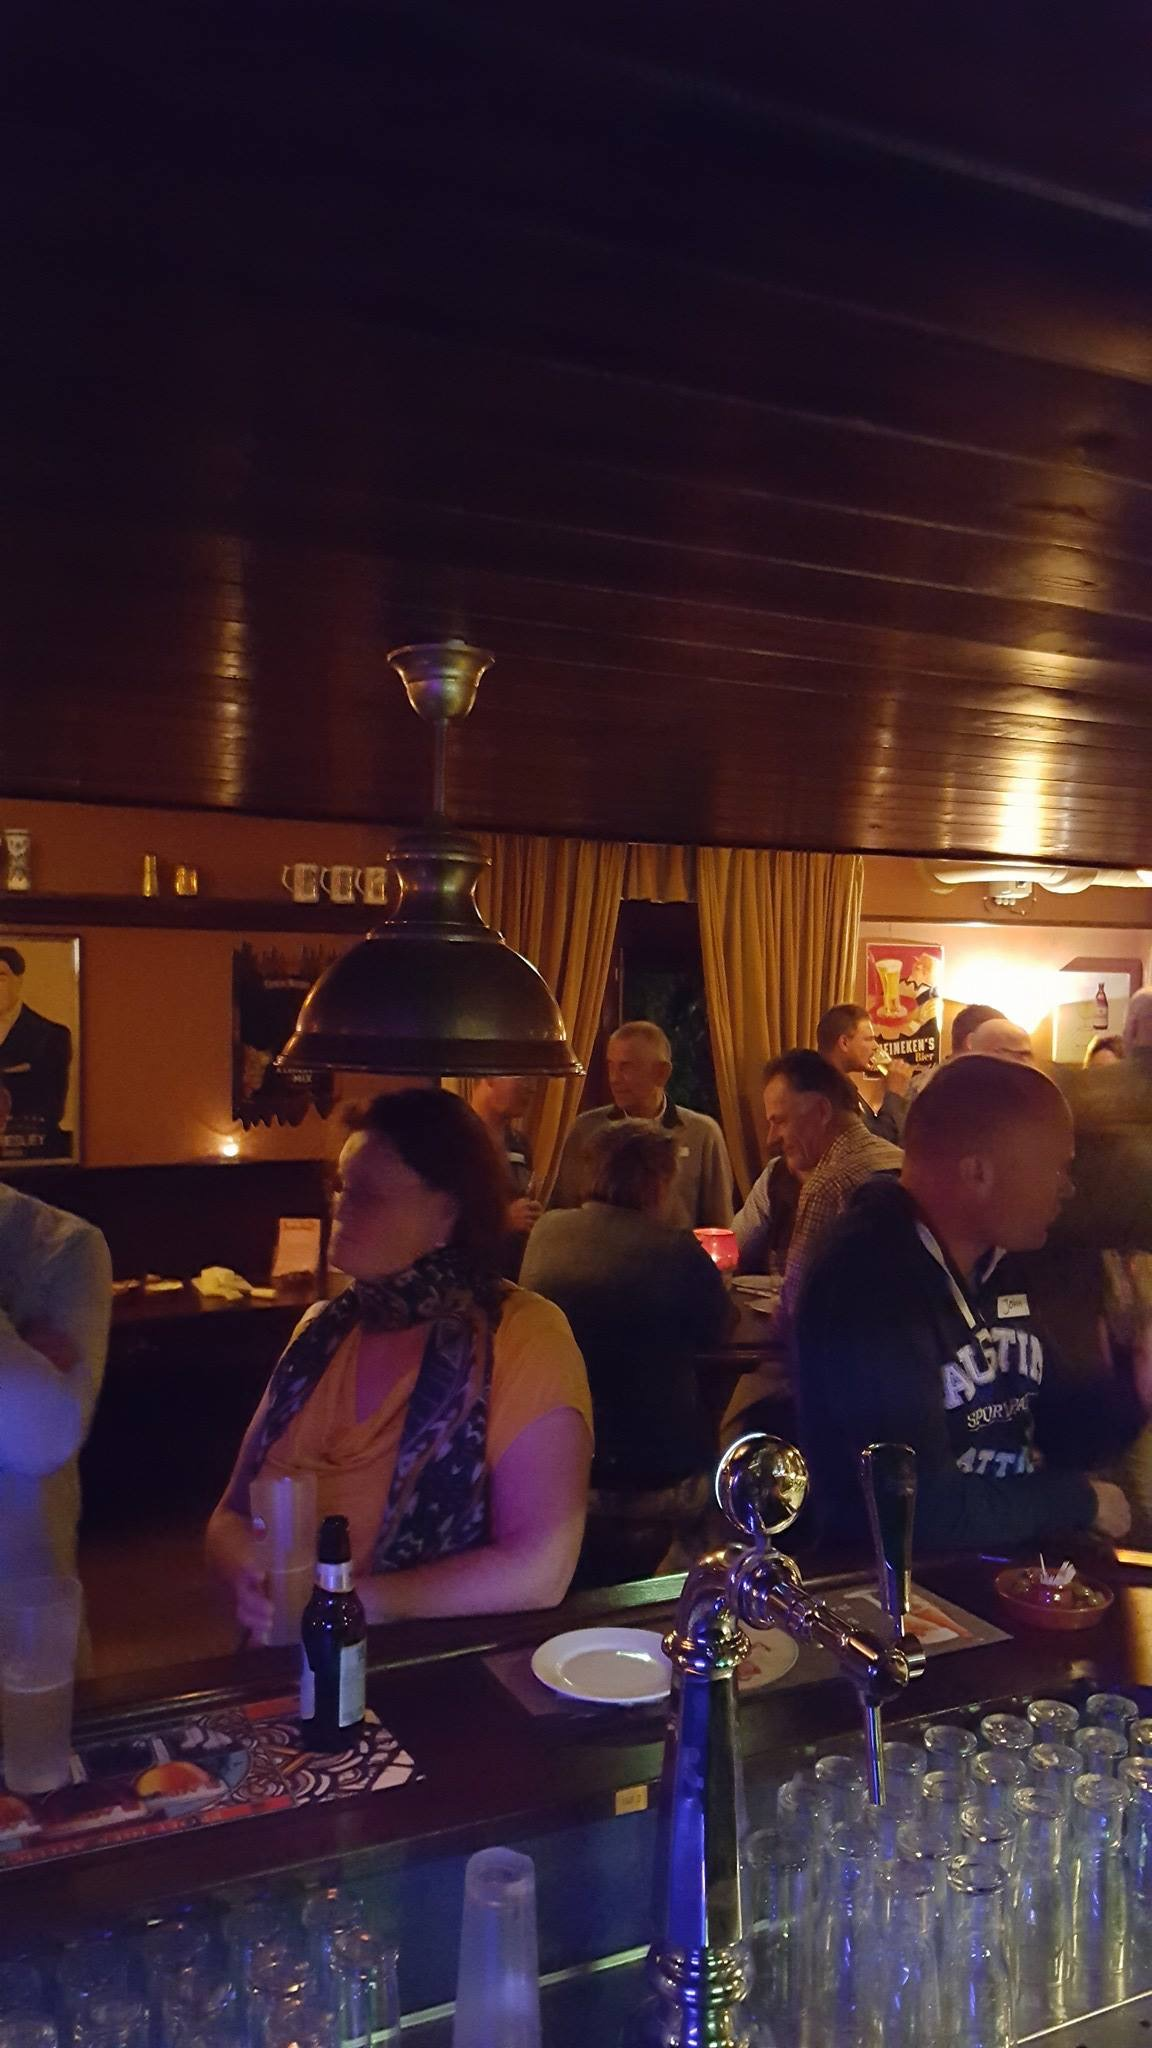 40+singlecafe in cafe Ruimzicht in Boskamp (gem. Olst)